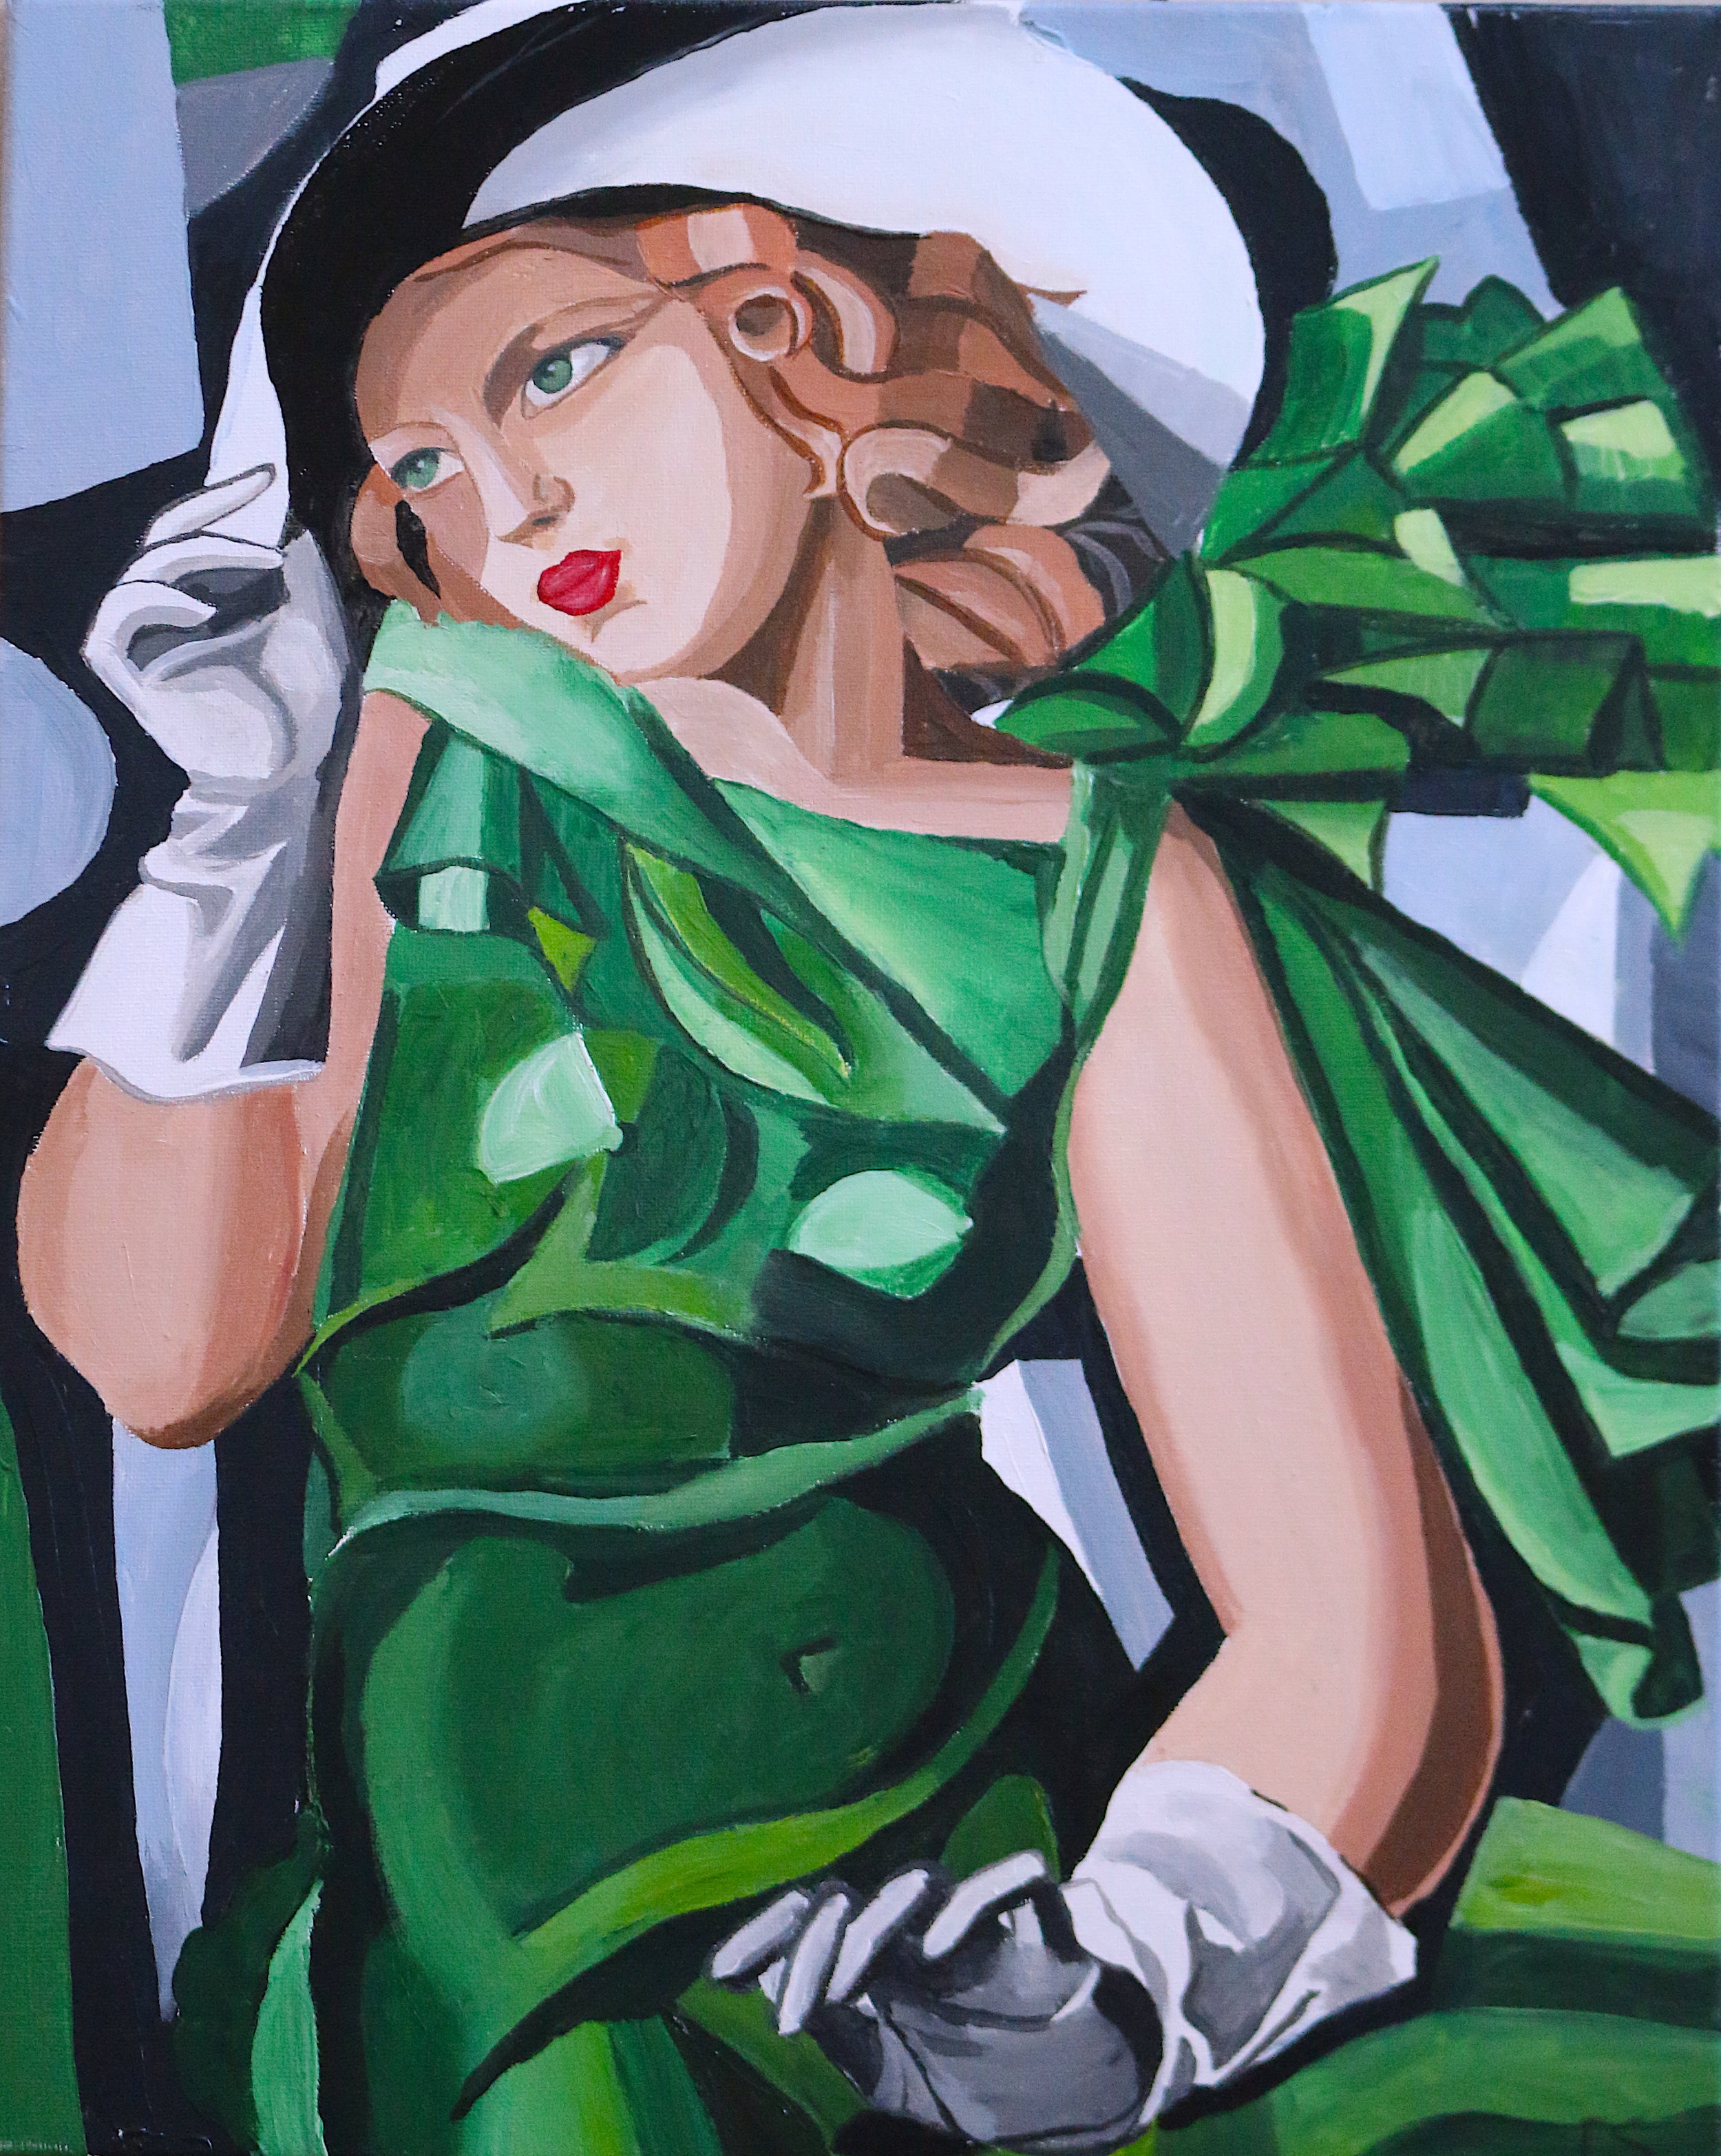 Girl in Green with Gloves by Lempicka